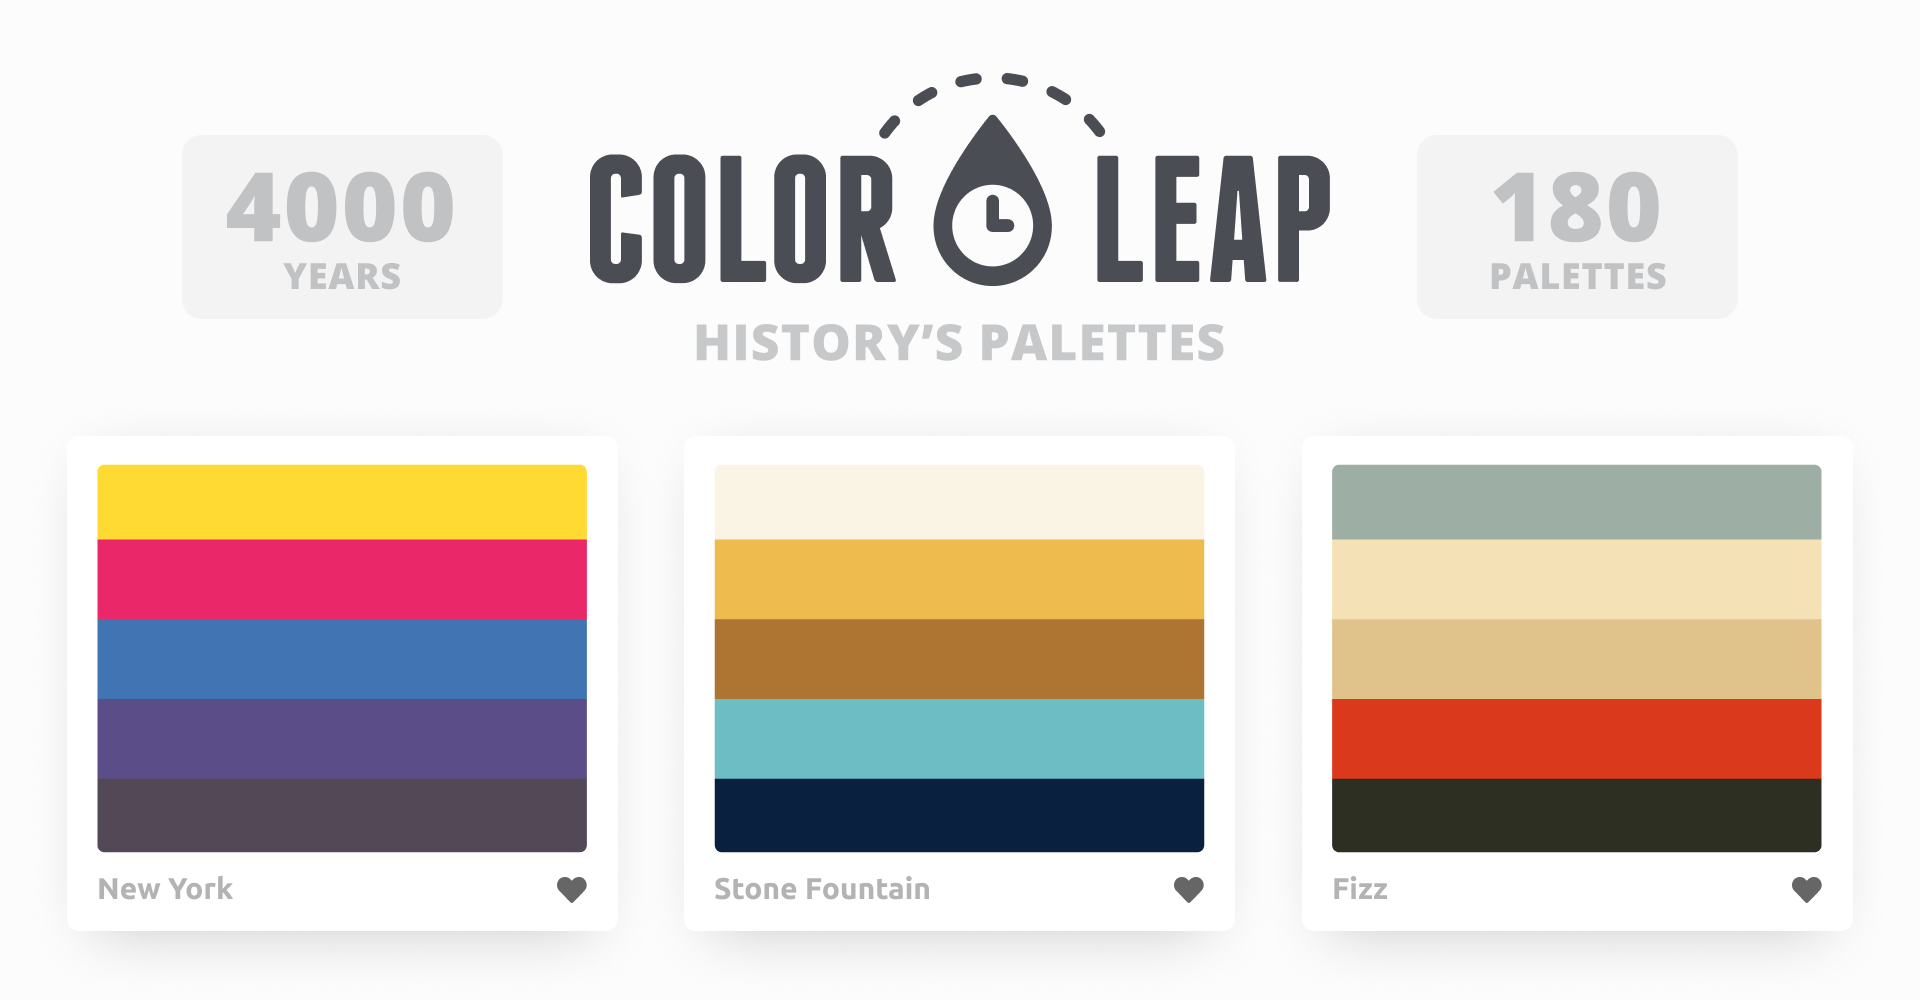 History's Palettes